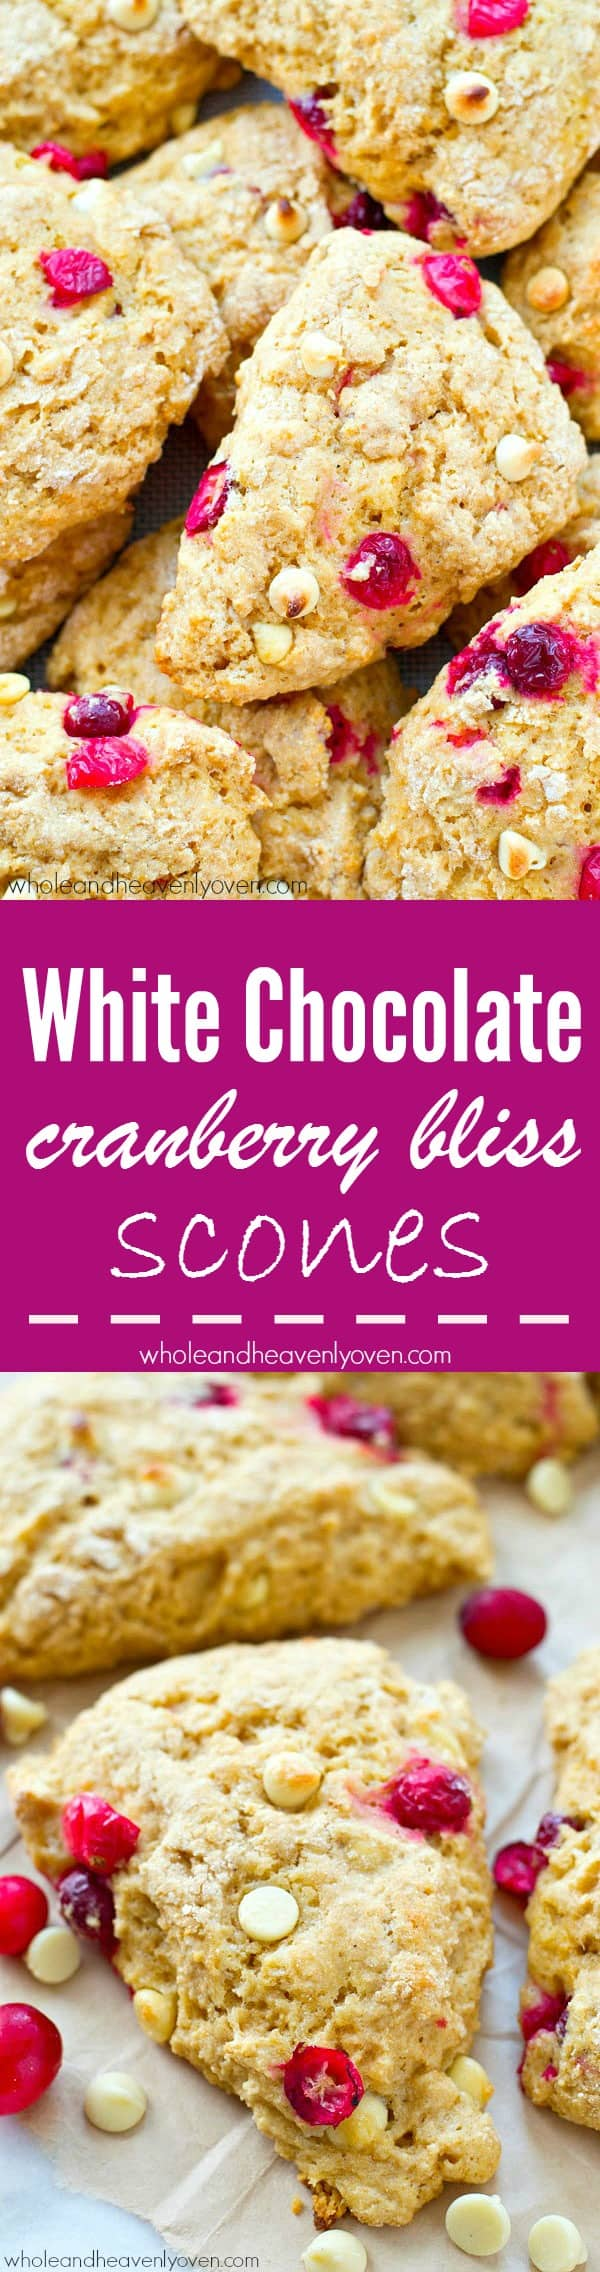 Love the cranberry bliss bars from Starbucks? You'll love them even more in scone form! @WholeHeavenly